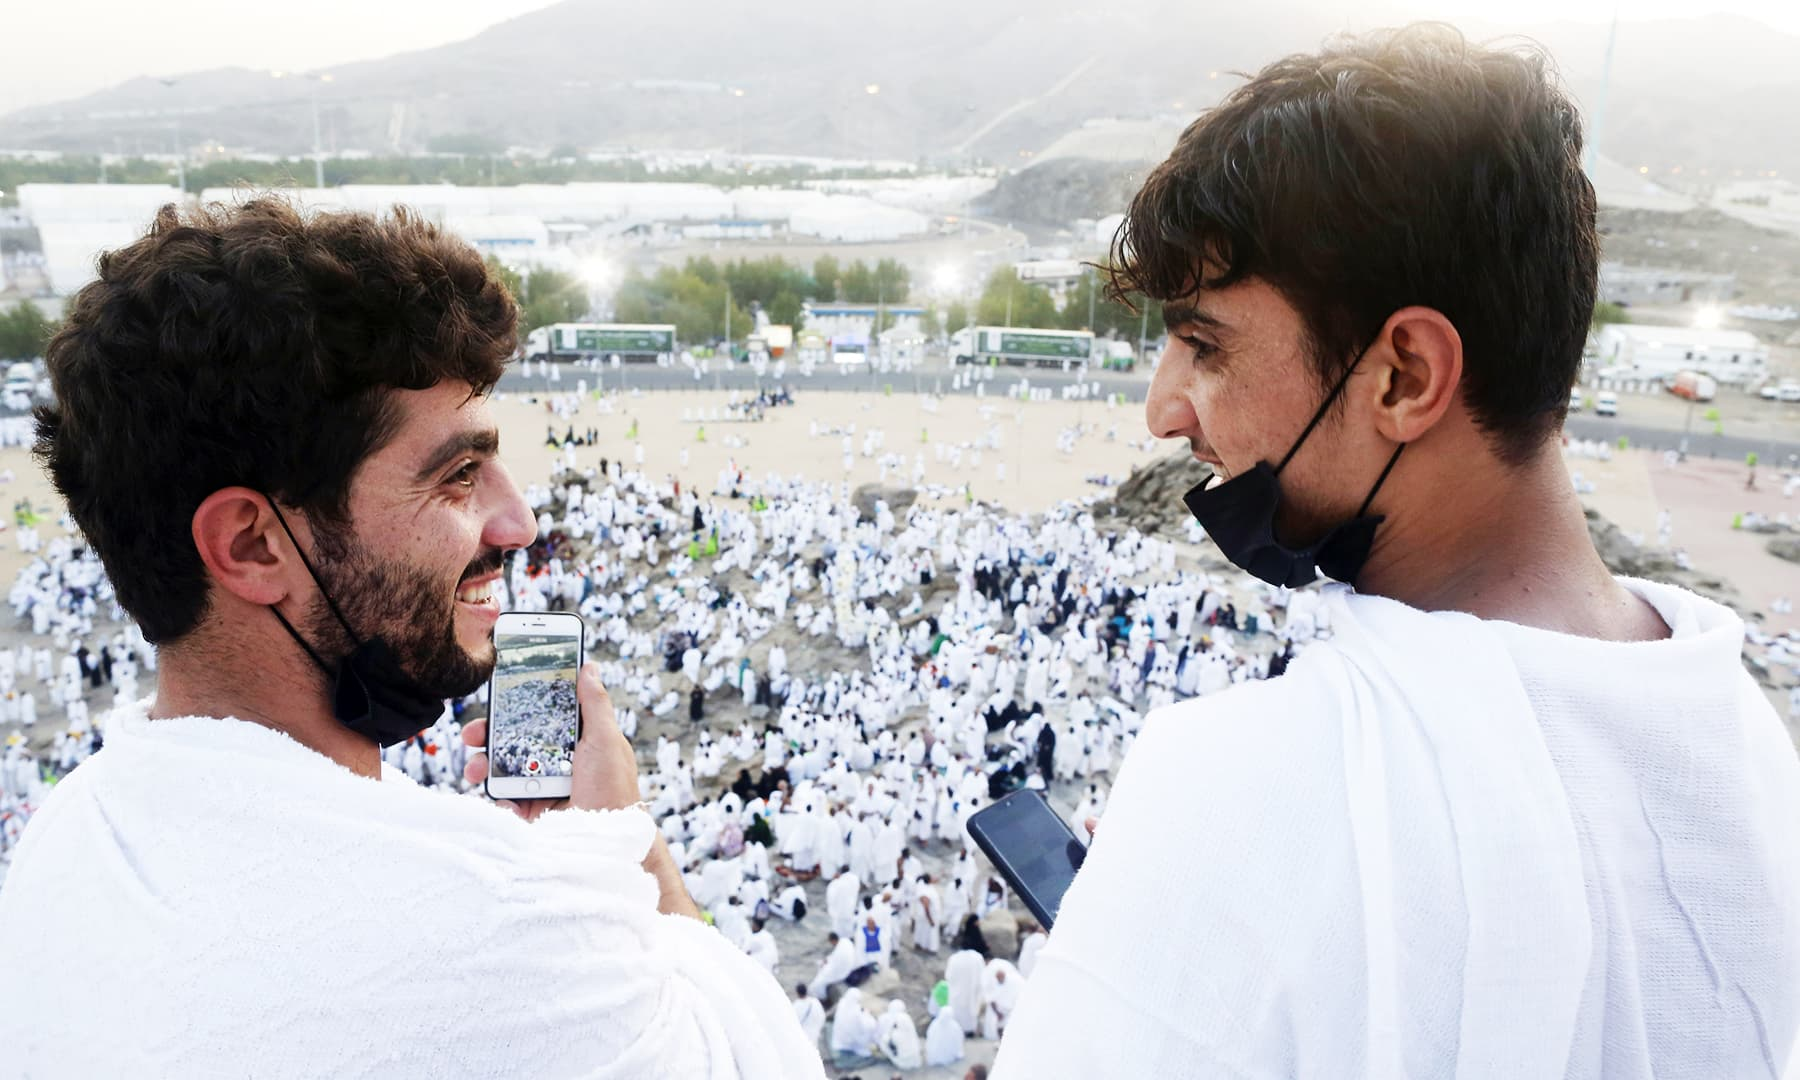 Syrian pilgrims Moiassar, left, and Abdallah, right, share a moment on a rocky hill known as Mountain of Mercy, on the Plain of Arafat during the annual hajj pilgrimage. — AP